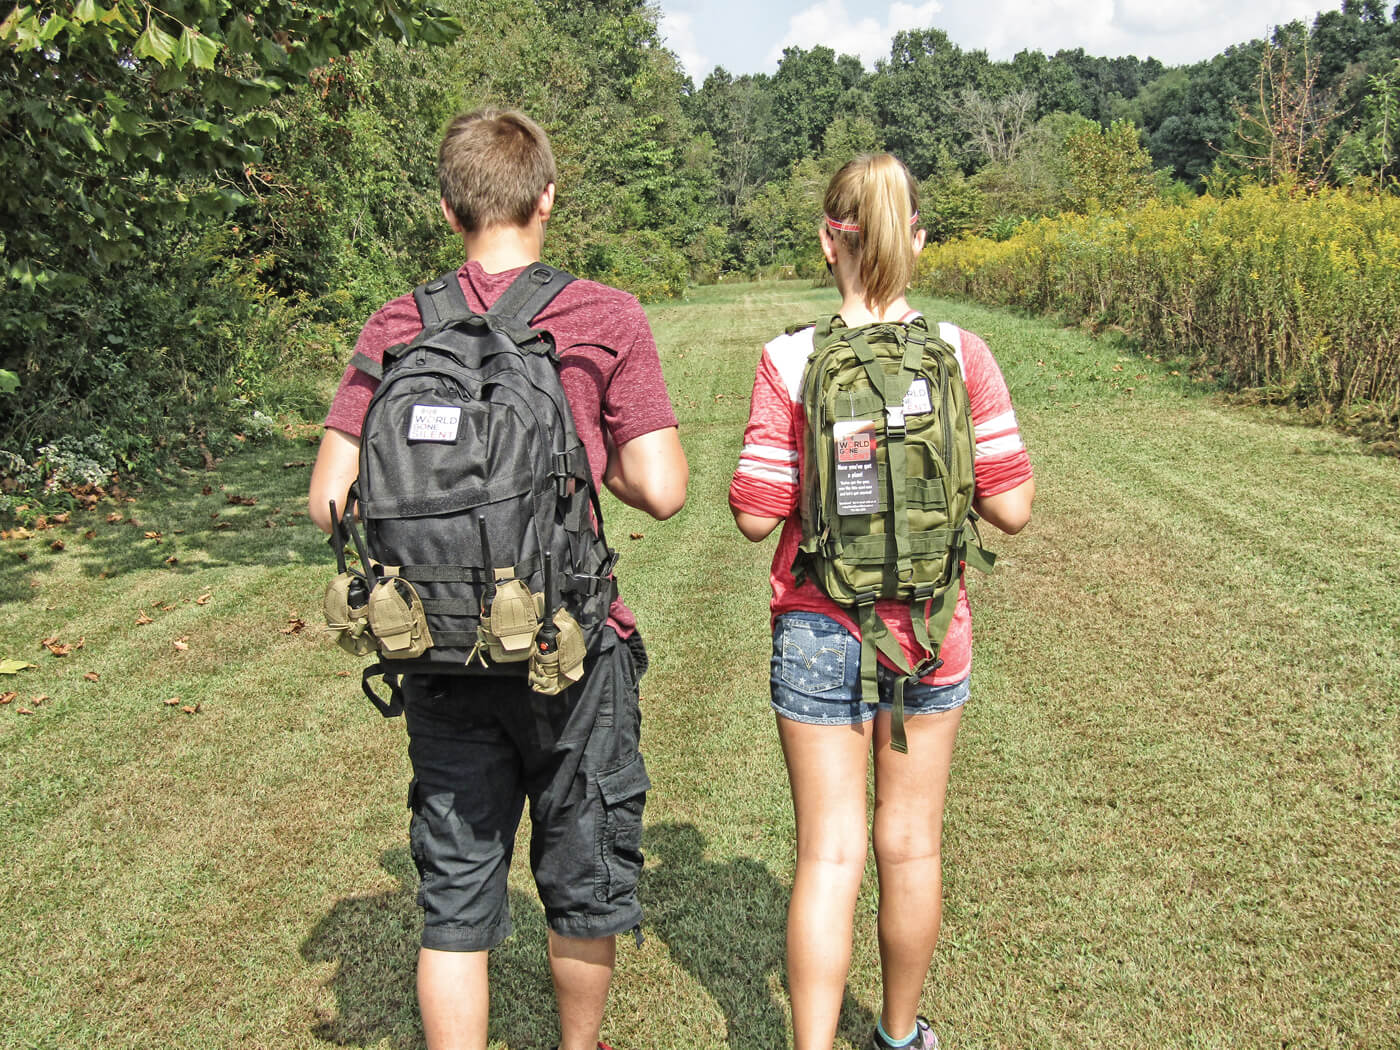 Young boy and girl carrying components for setting up World Gone Silent disaster radio system